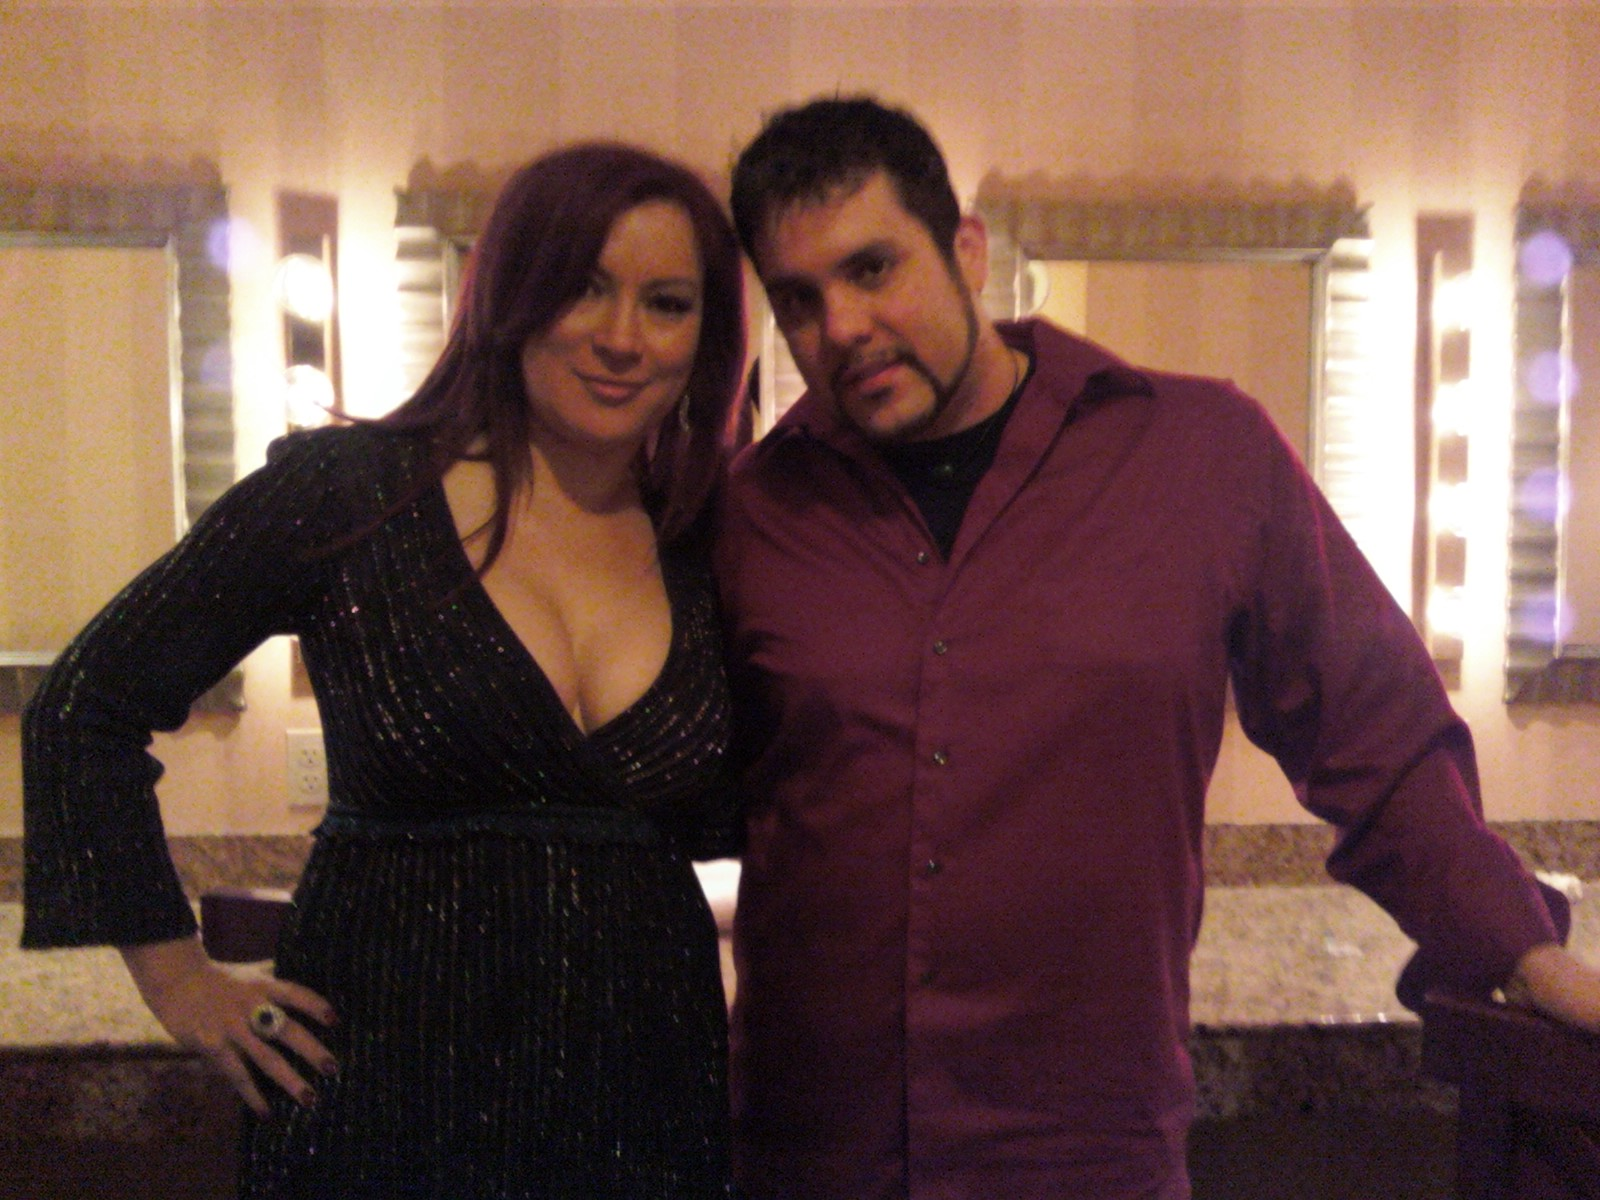 Me and Jennifer Tilly